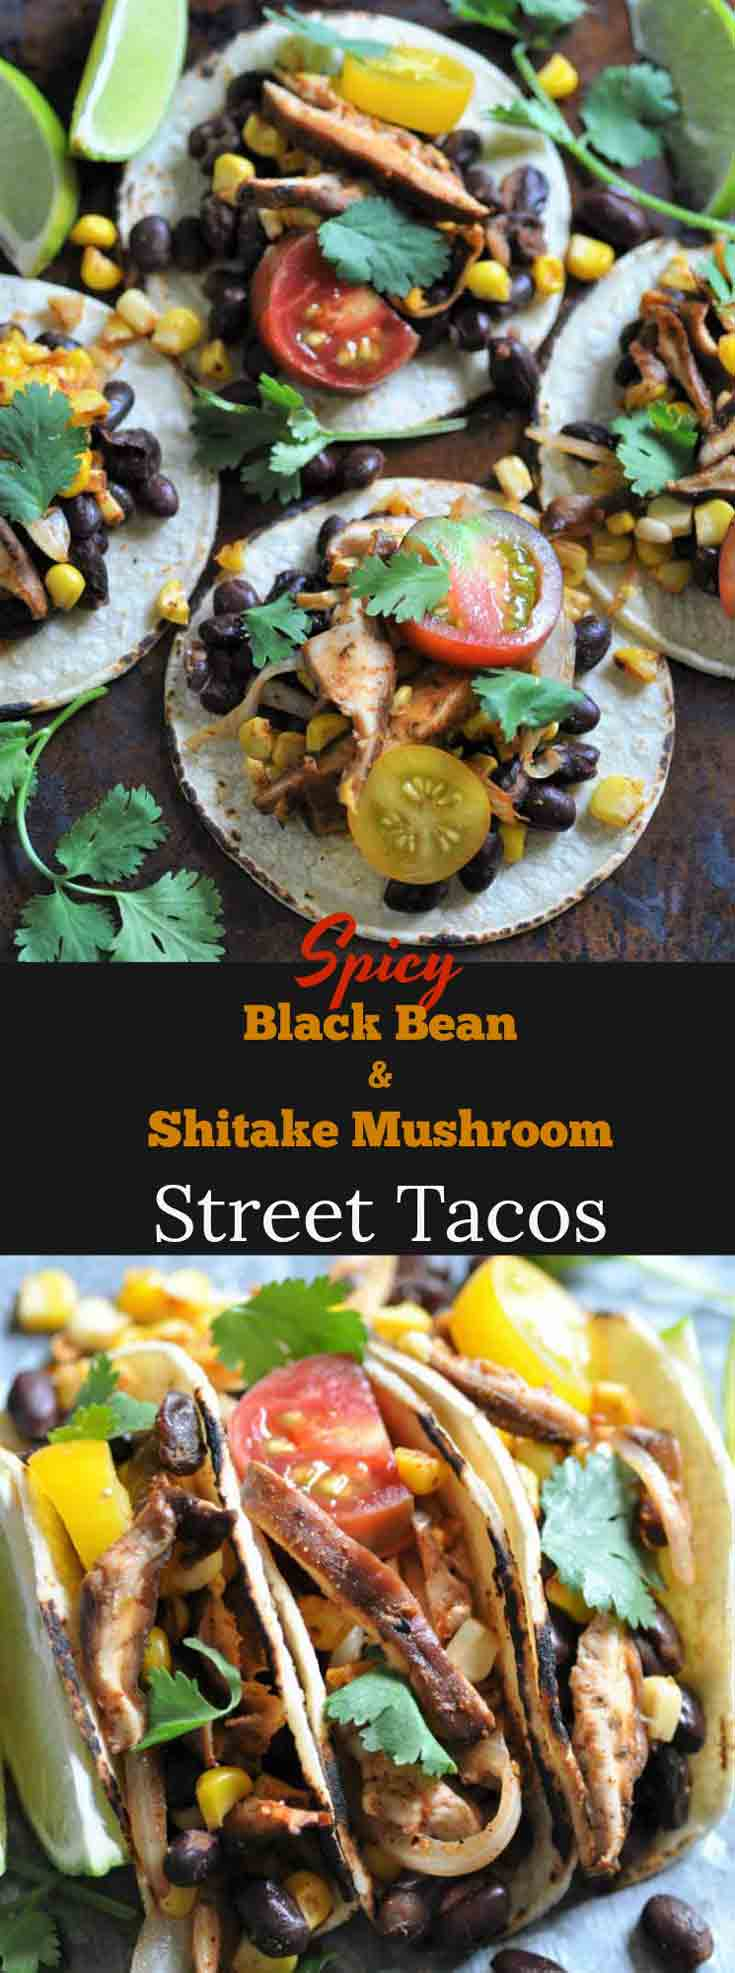 Black bean, corn, & shitake mushroom street tacos! The perfect appetizer or meal.